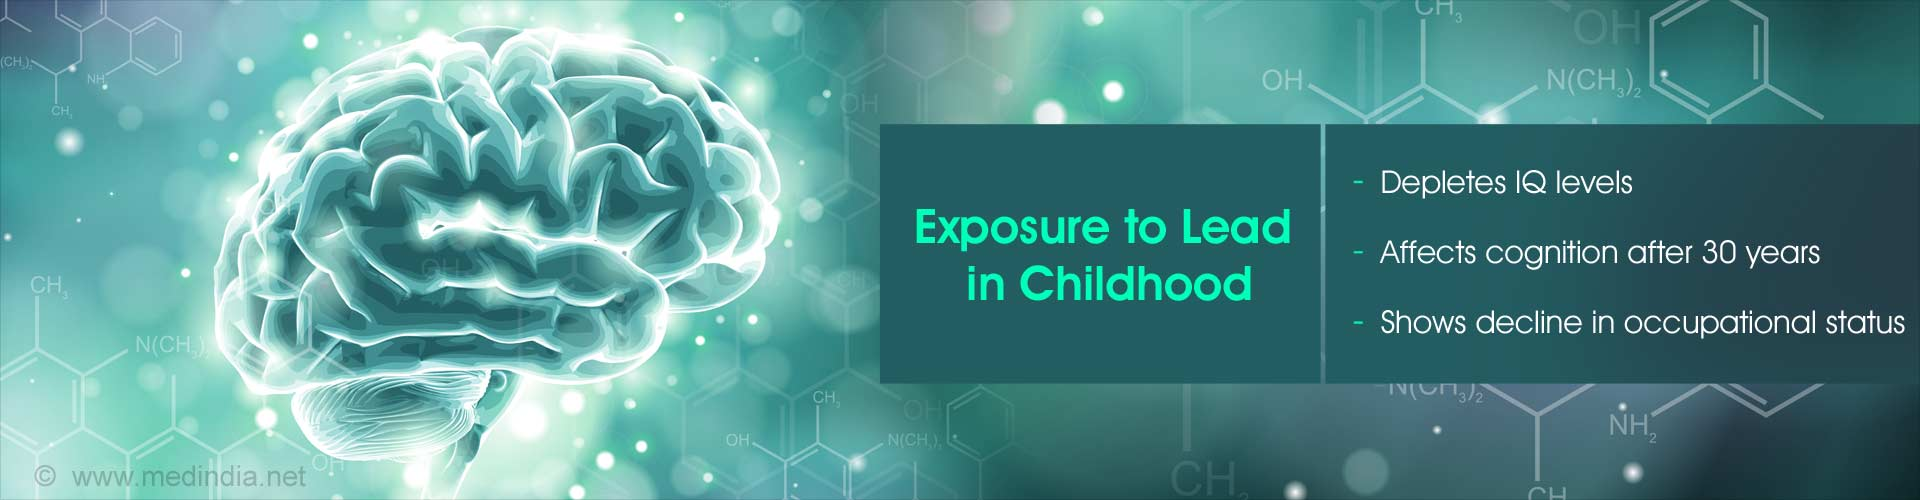 Lead Exposure In Childhood Affects IQ Levels After 30 Years